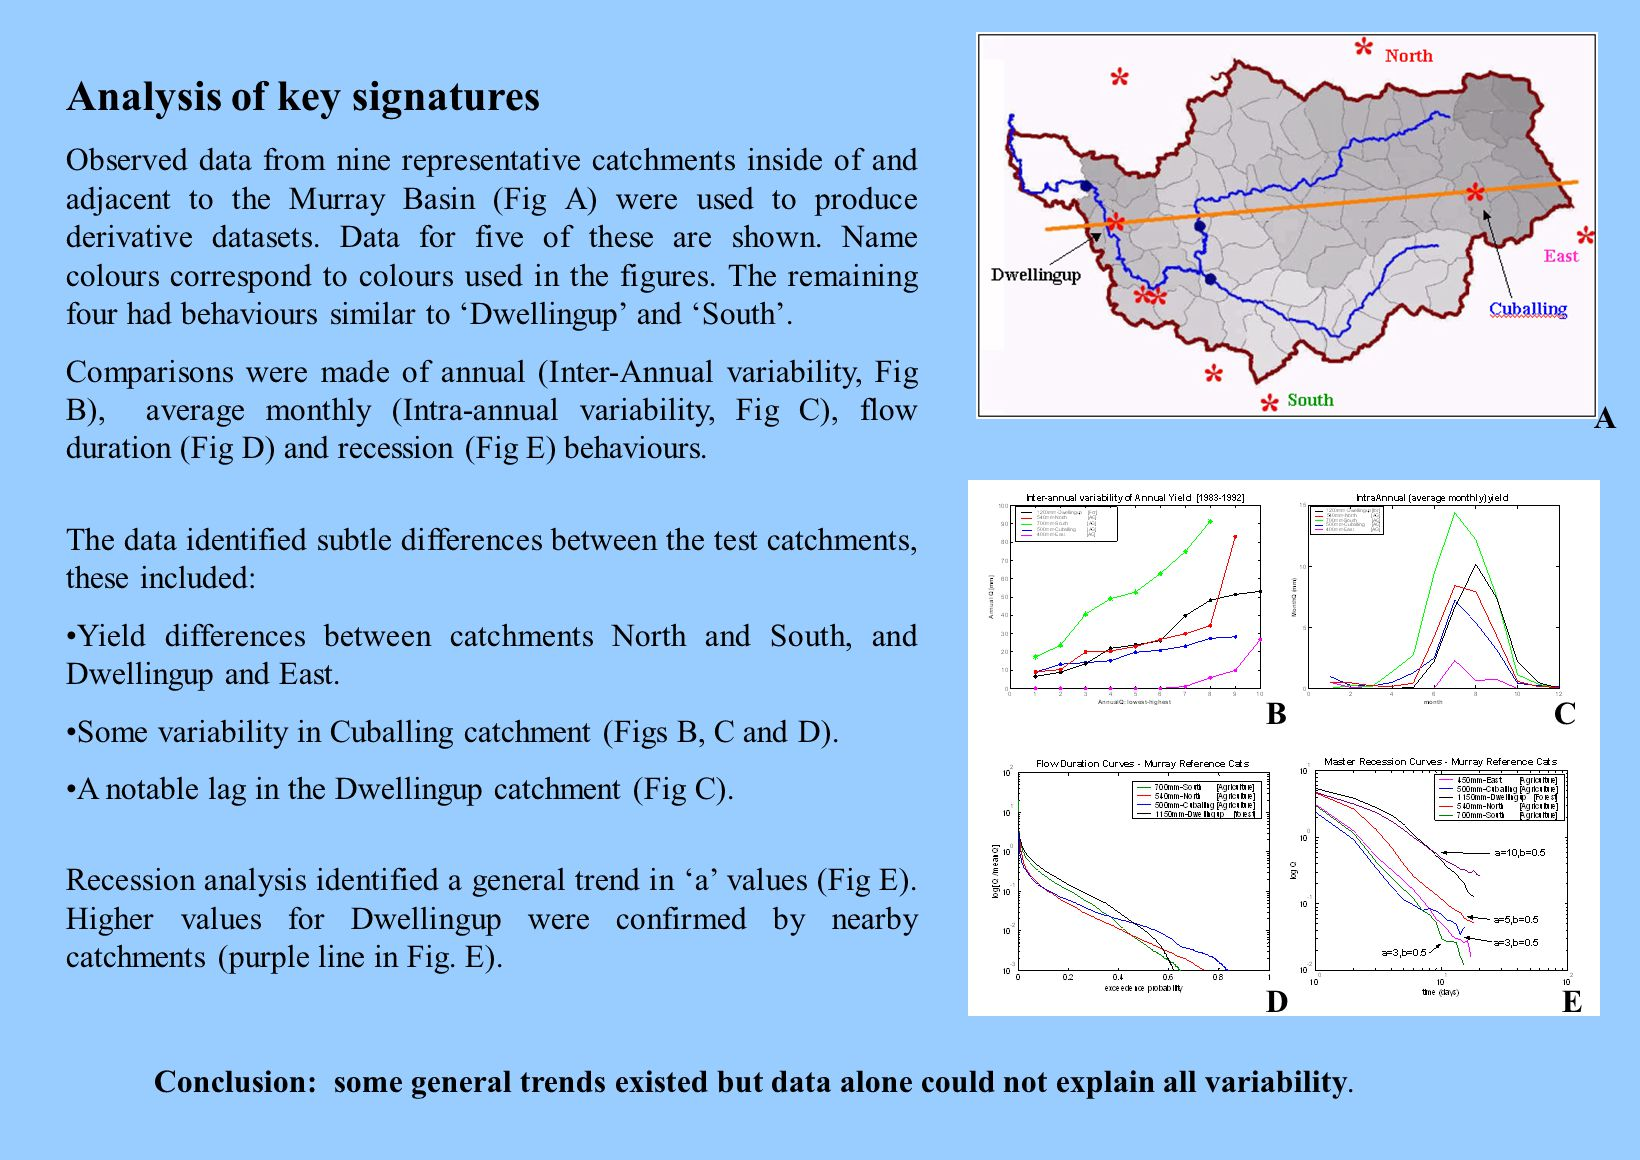 A BC ED Analysis of key signatures Observed data from nine representative catchments inside of and adjacent to the Murray Basin (Fig A) were used to produce derivative datasets.